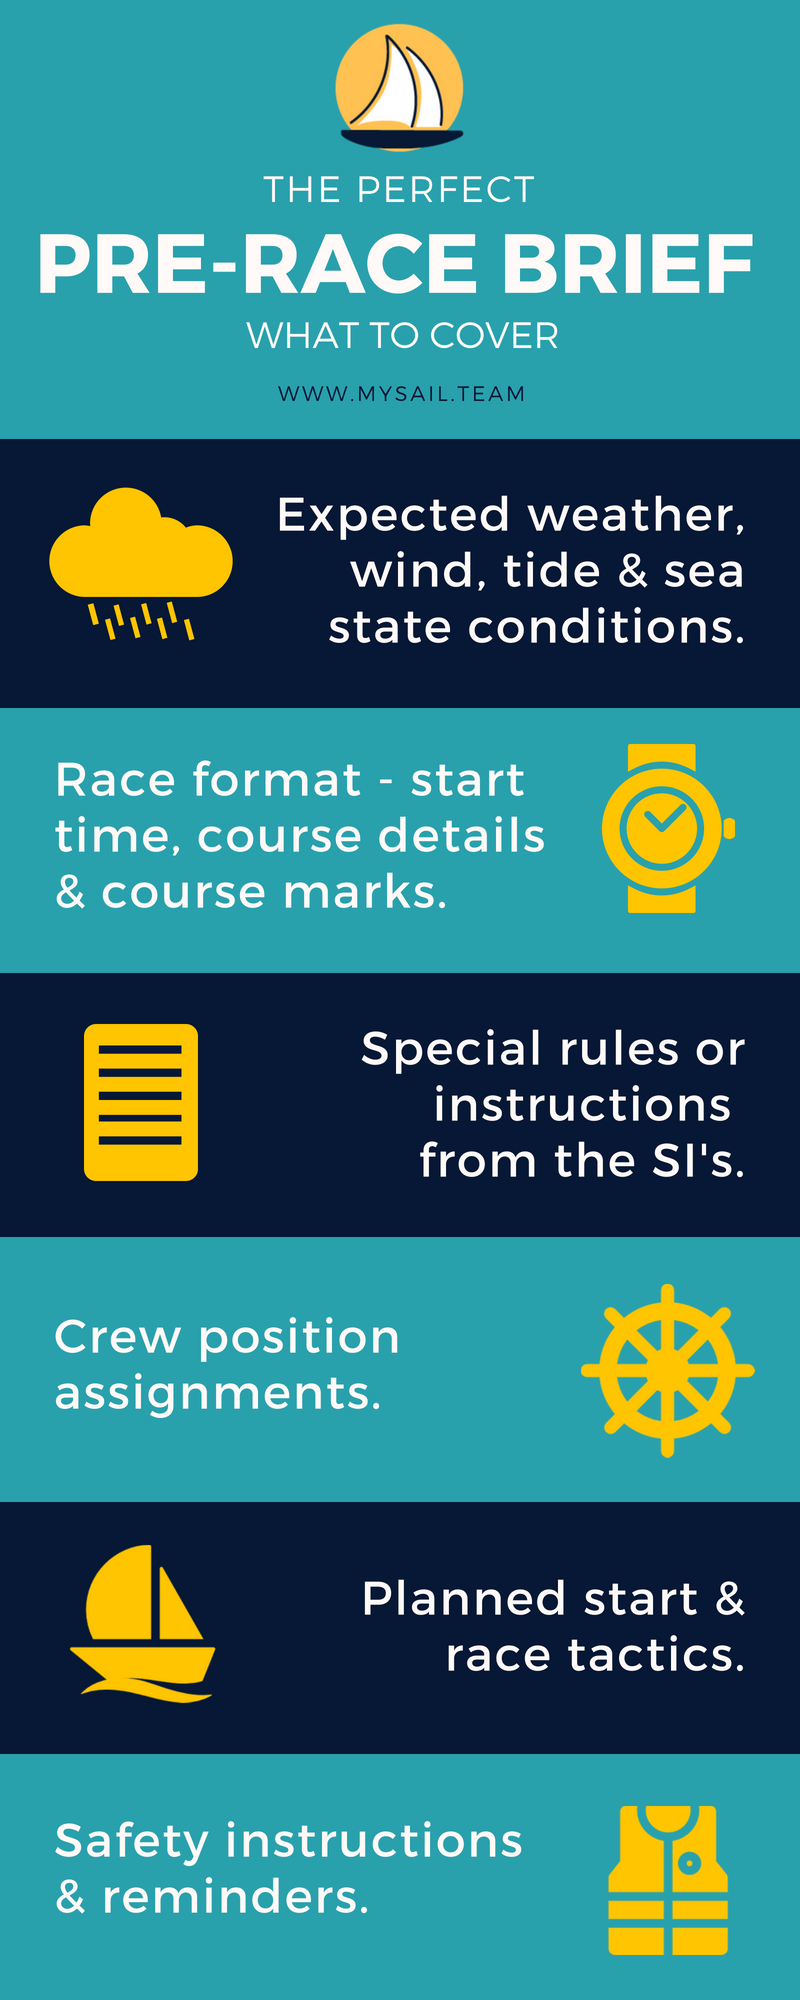 Infographic - the perfect pre-race briefing